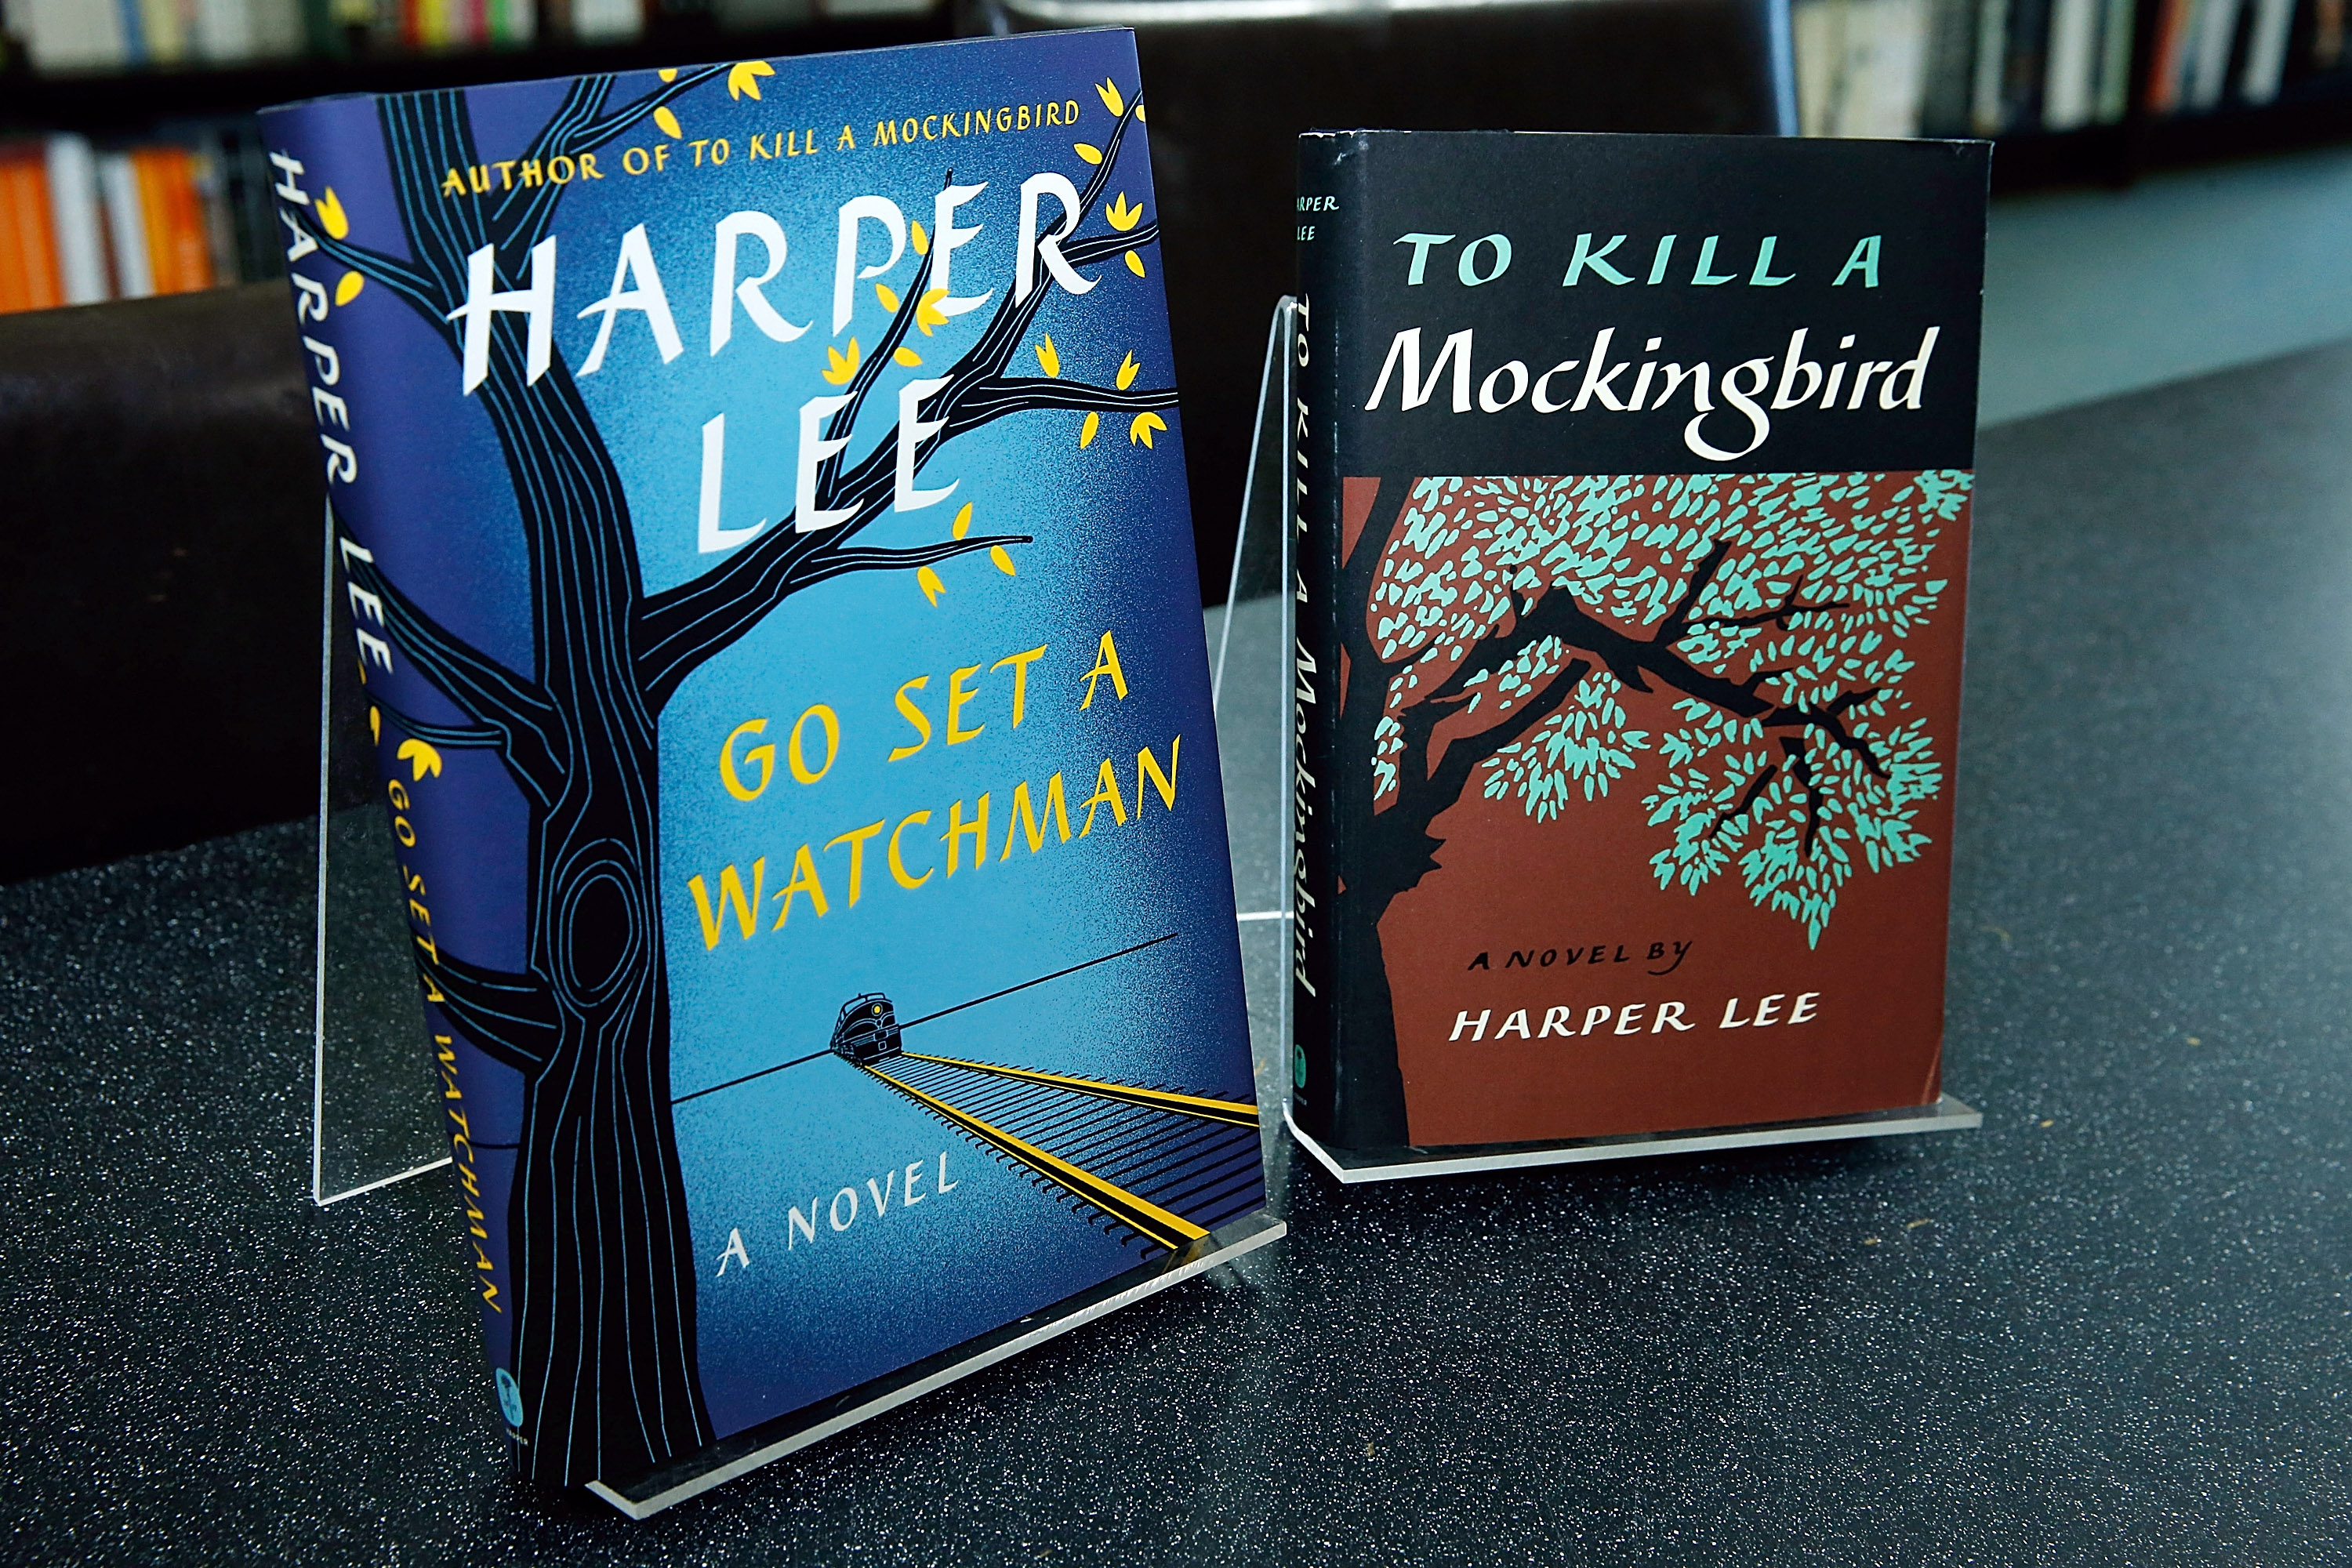 Harper Lee's recently found edition of 'Go Set a Watchman' to be released on July 14 is exhibited  along a new edition of   To Kill a Mockingbird  by the same author during the Harper Lee celebration with Wally Lamb and Leslie Uggams in conversation with Bill Goldstein at Barnes & Noble Union Square on July 13, 2015 in New York City.